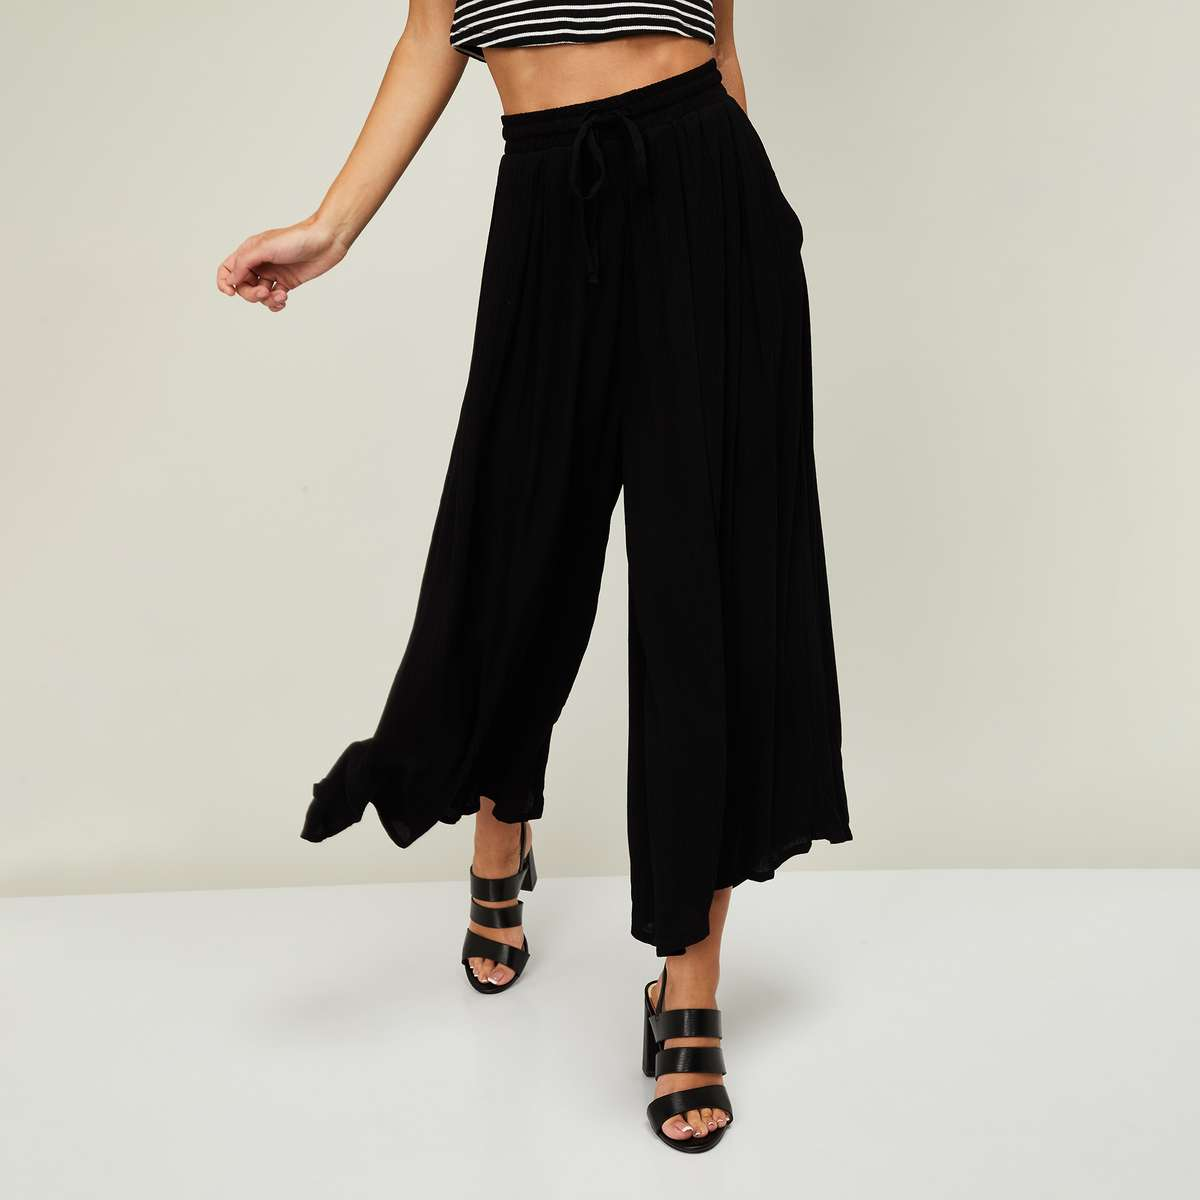 3.CODE Women Solid Flared Palazzos